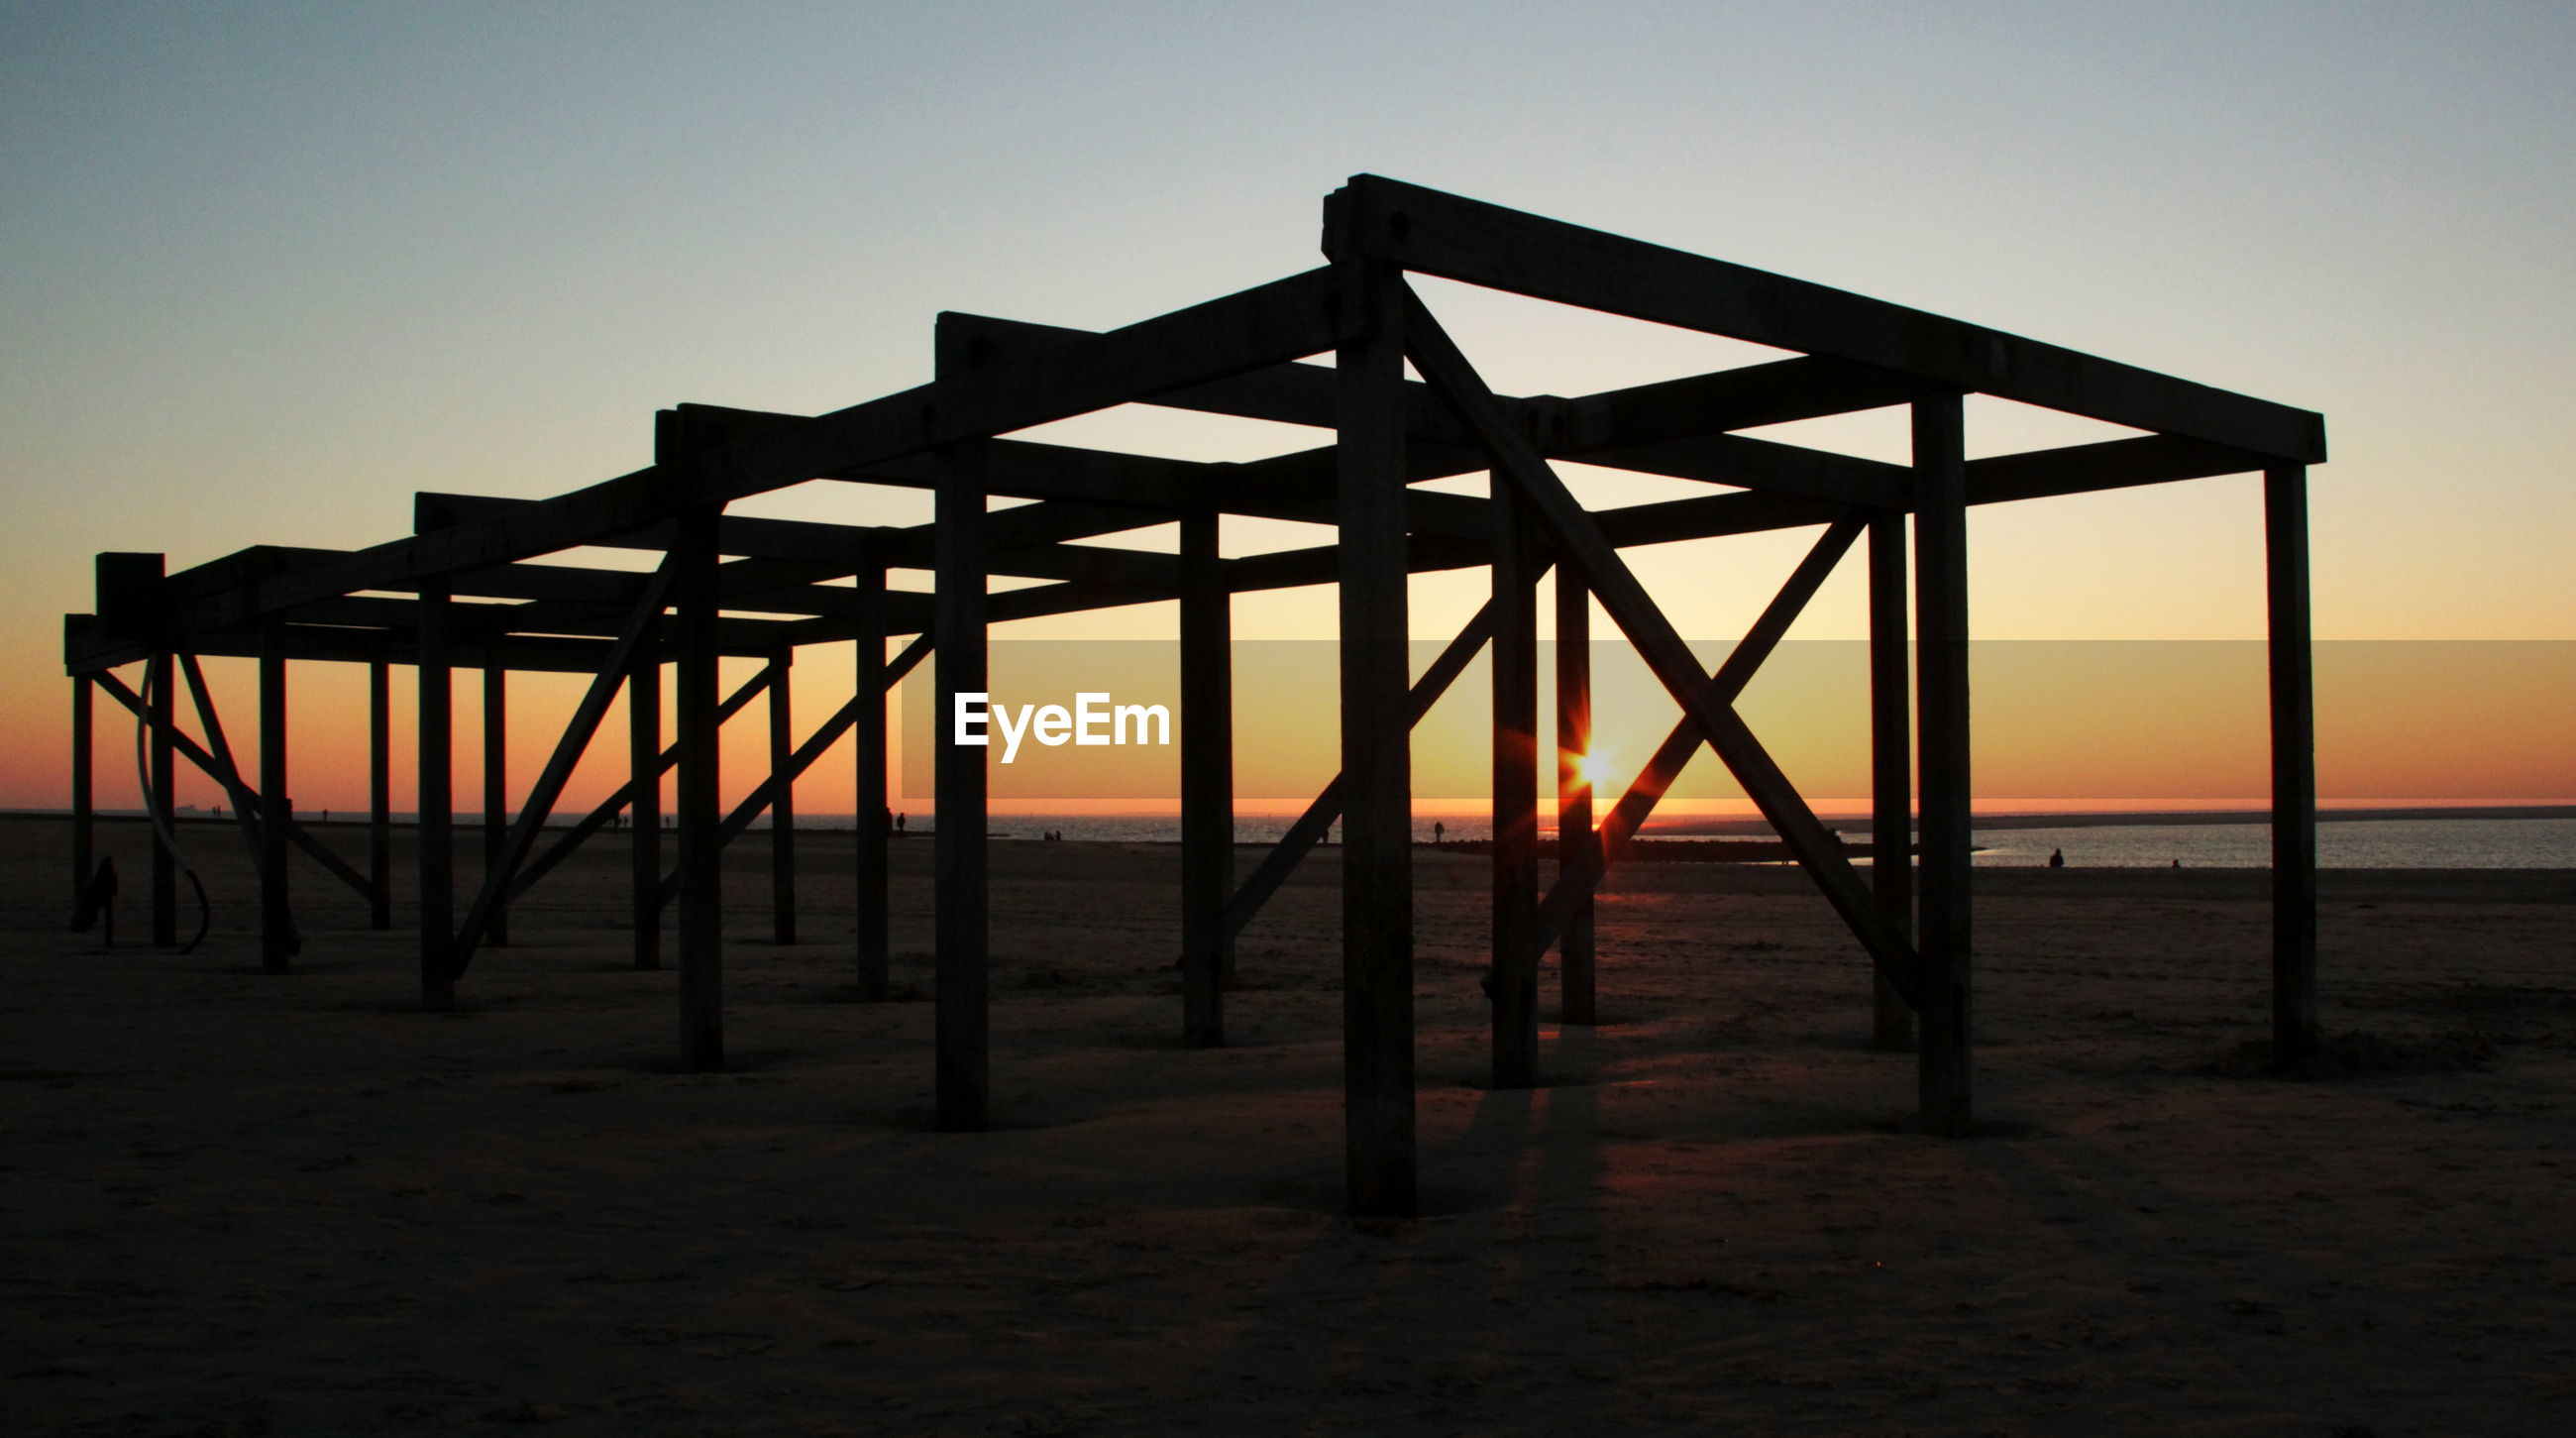 SILHOUETTE BUILT STRUCTURE ON BEACH AGAINST SKY